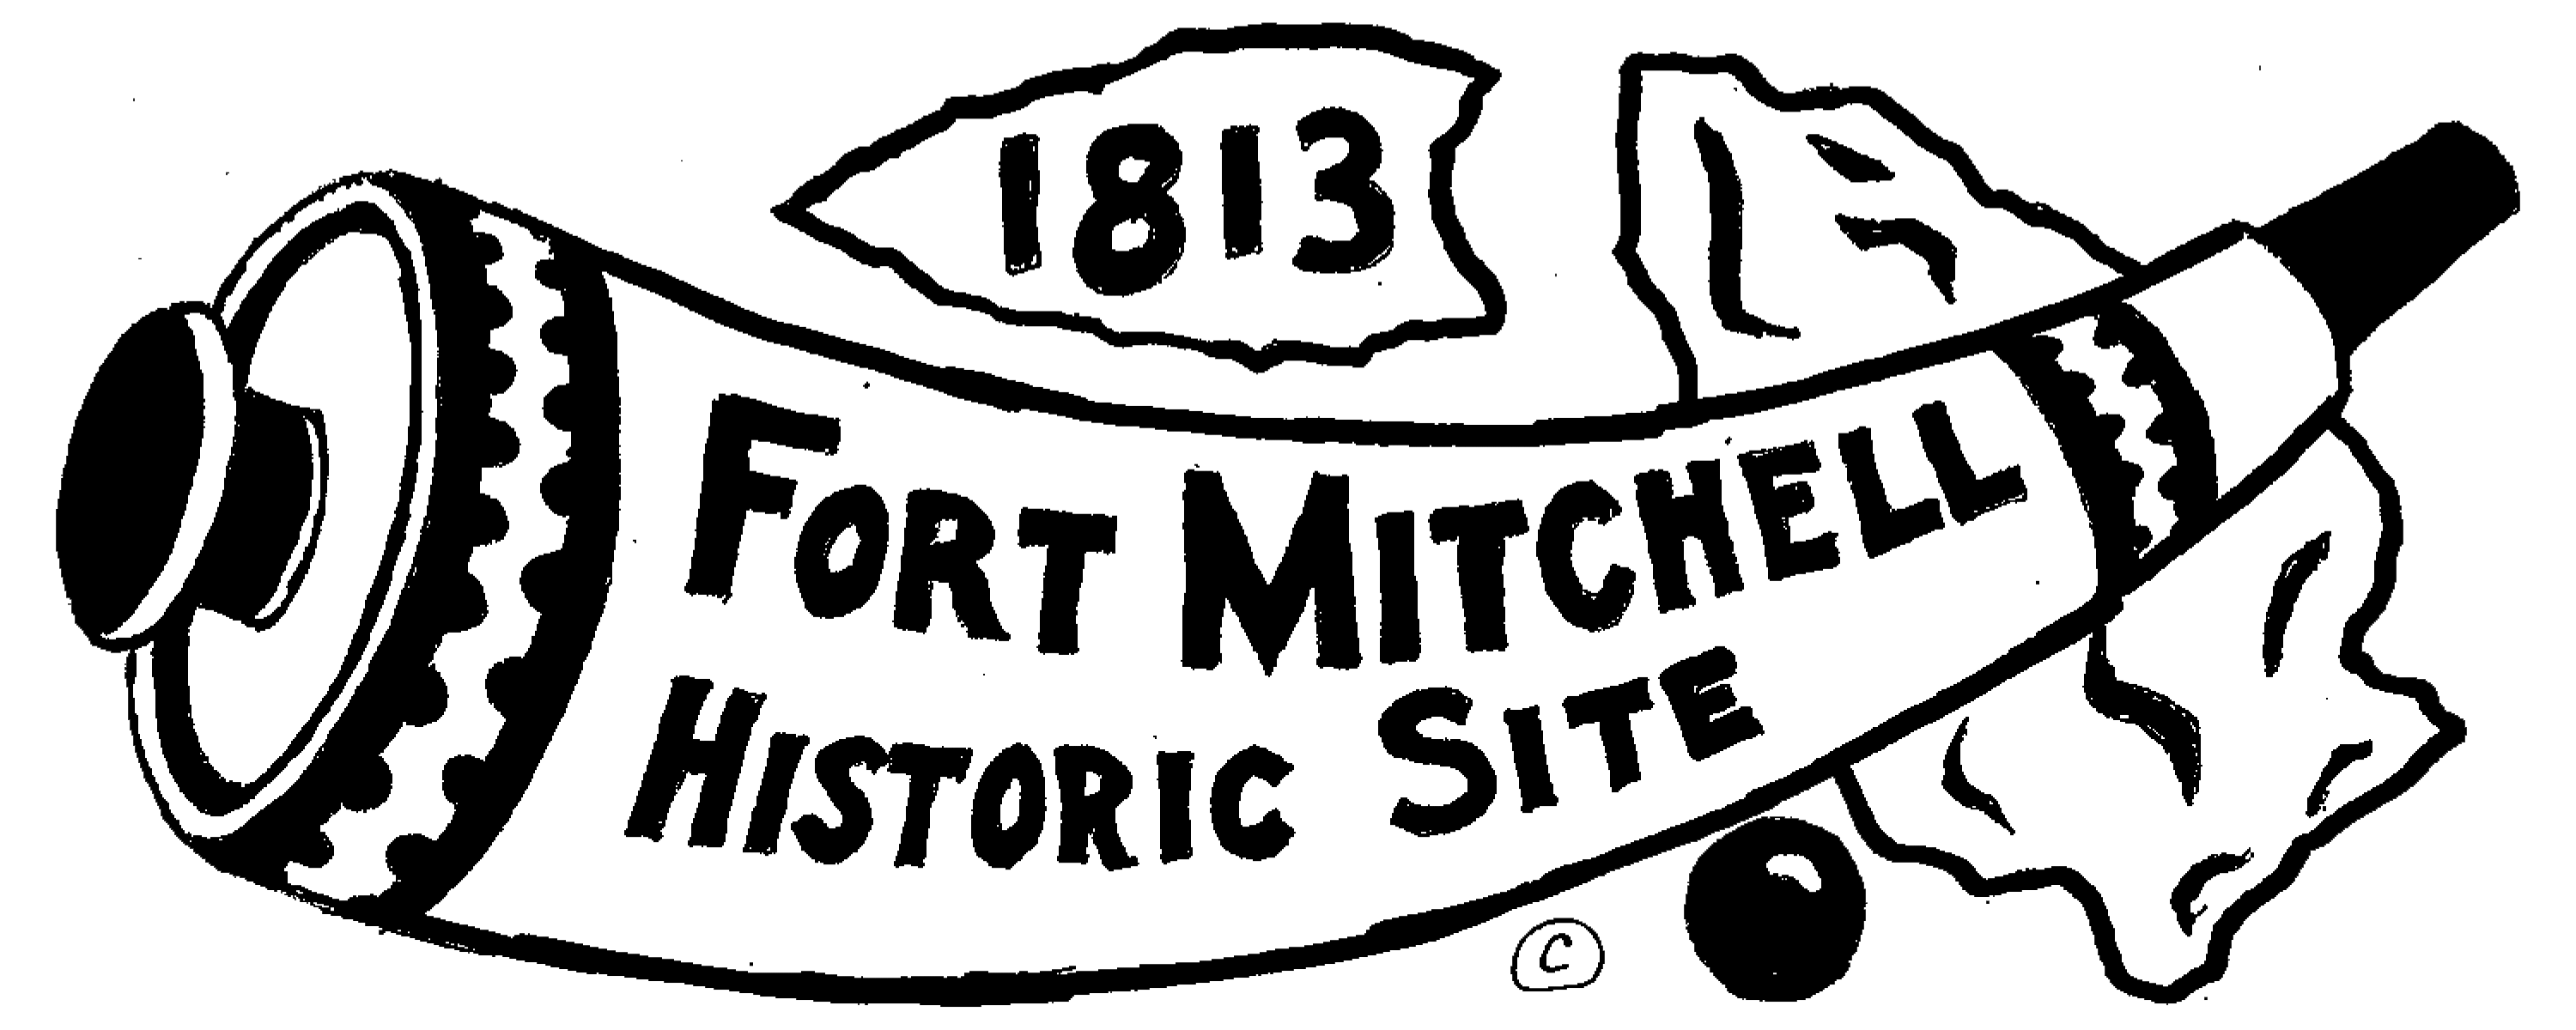 //visitfortmitchell.org/wp-content/uploads/2019/09/logo_drawing.png